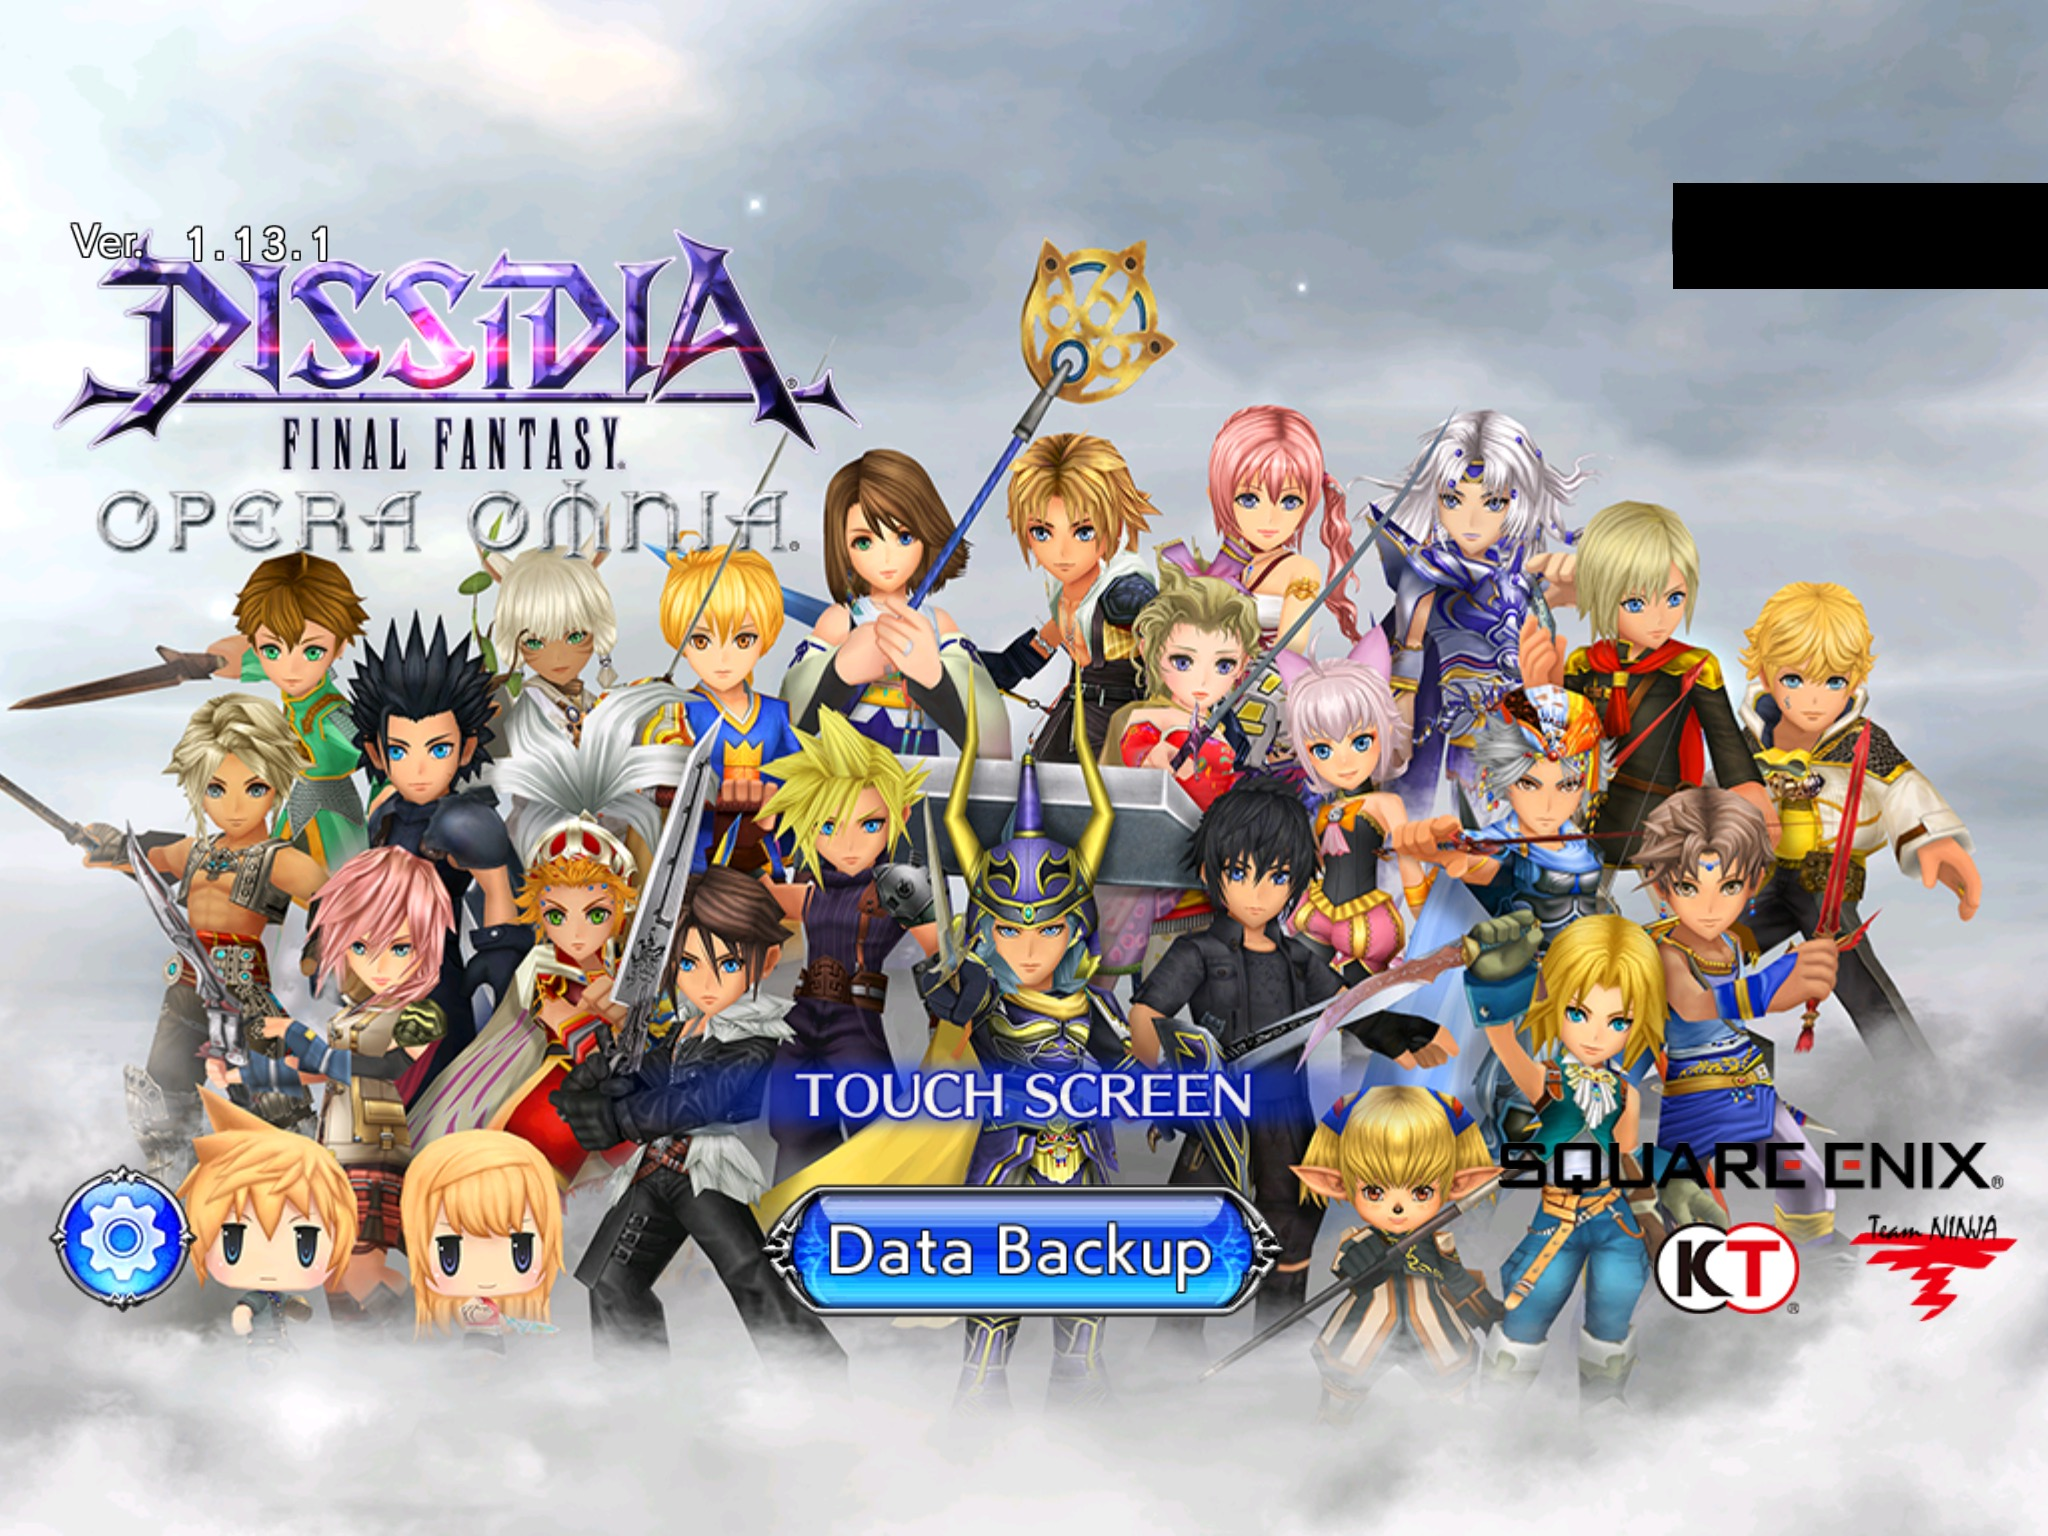 DFFOO Title Splash GL 1.13.1.jpeg